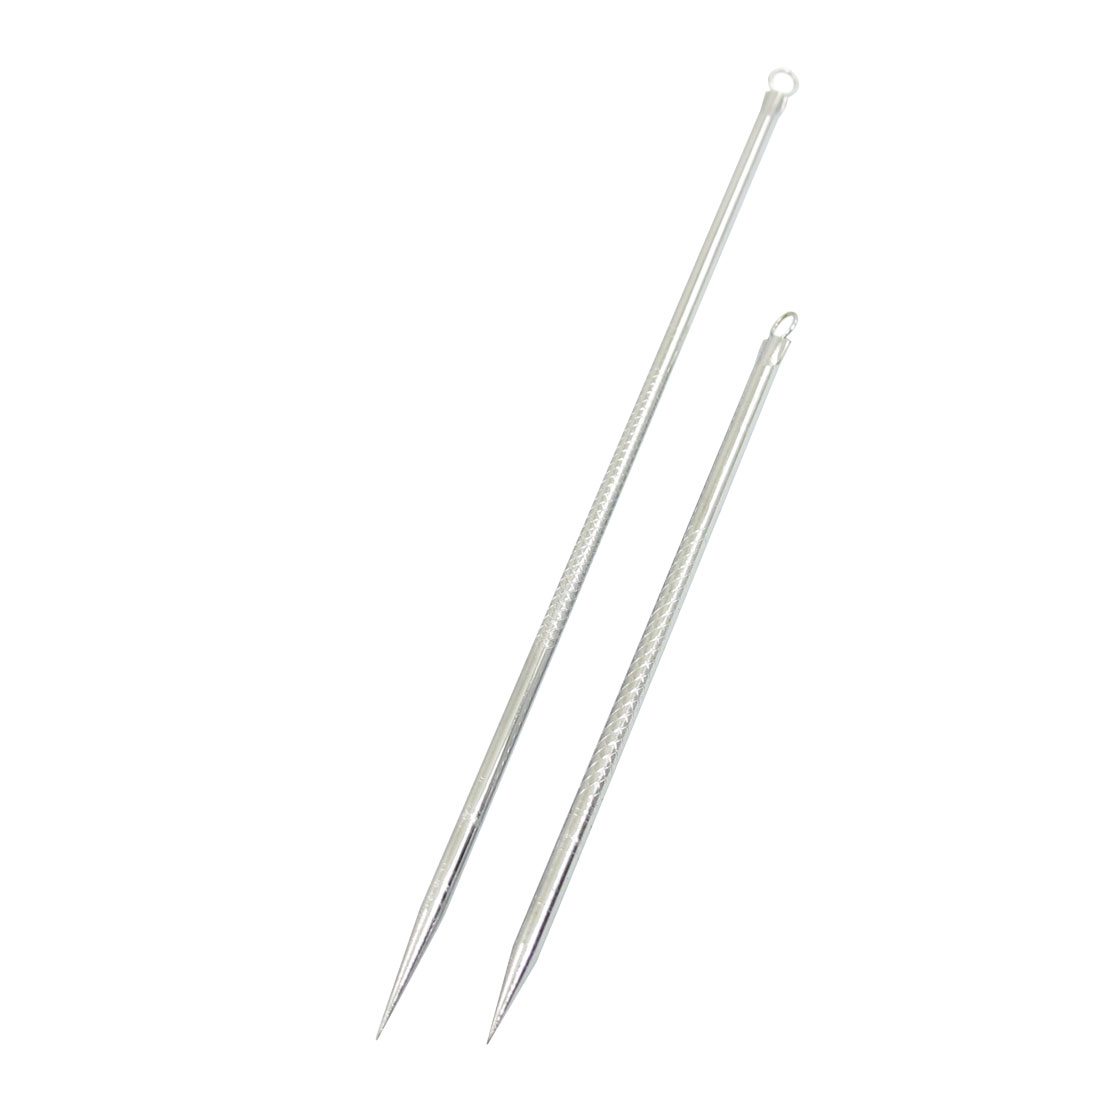 Ladies Plastic Bags Blackhead Pimple Acne Remover Needle Silver Tone 2 Pcs